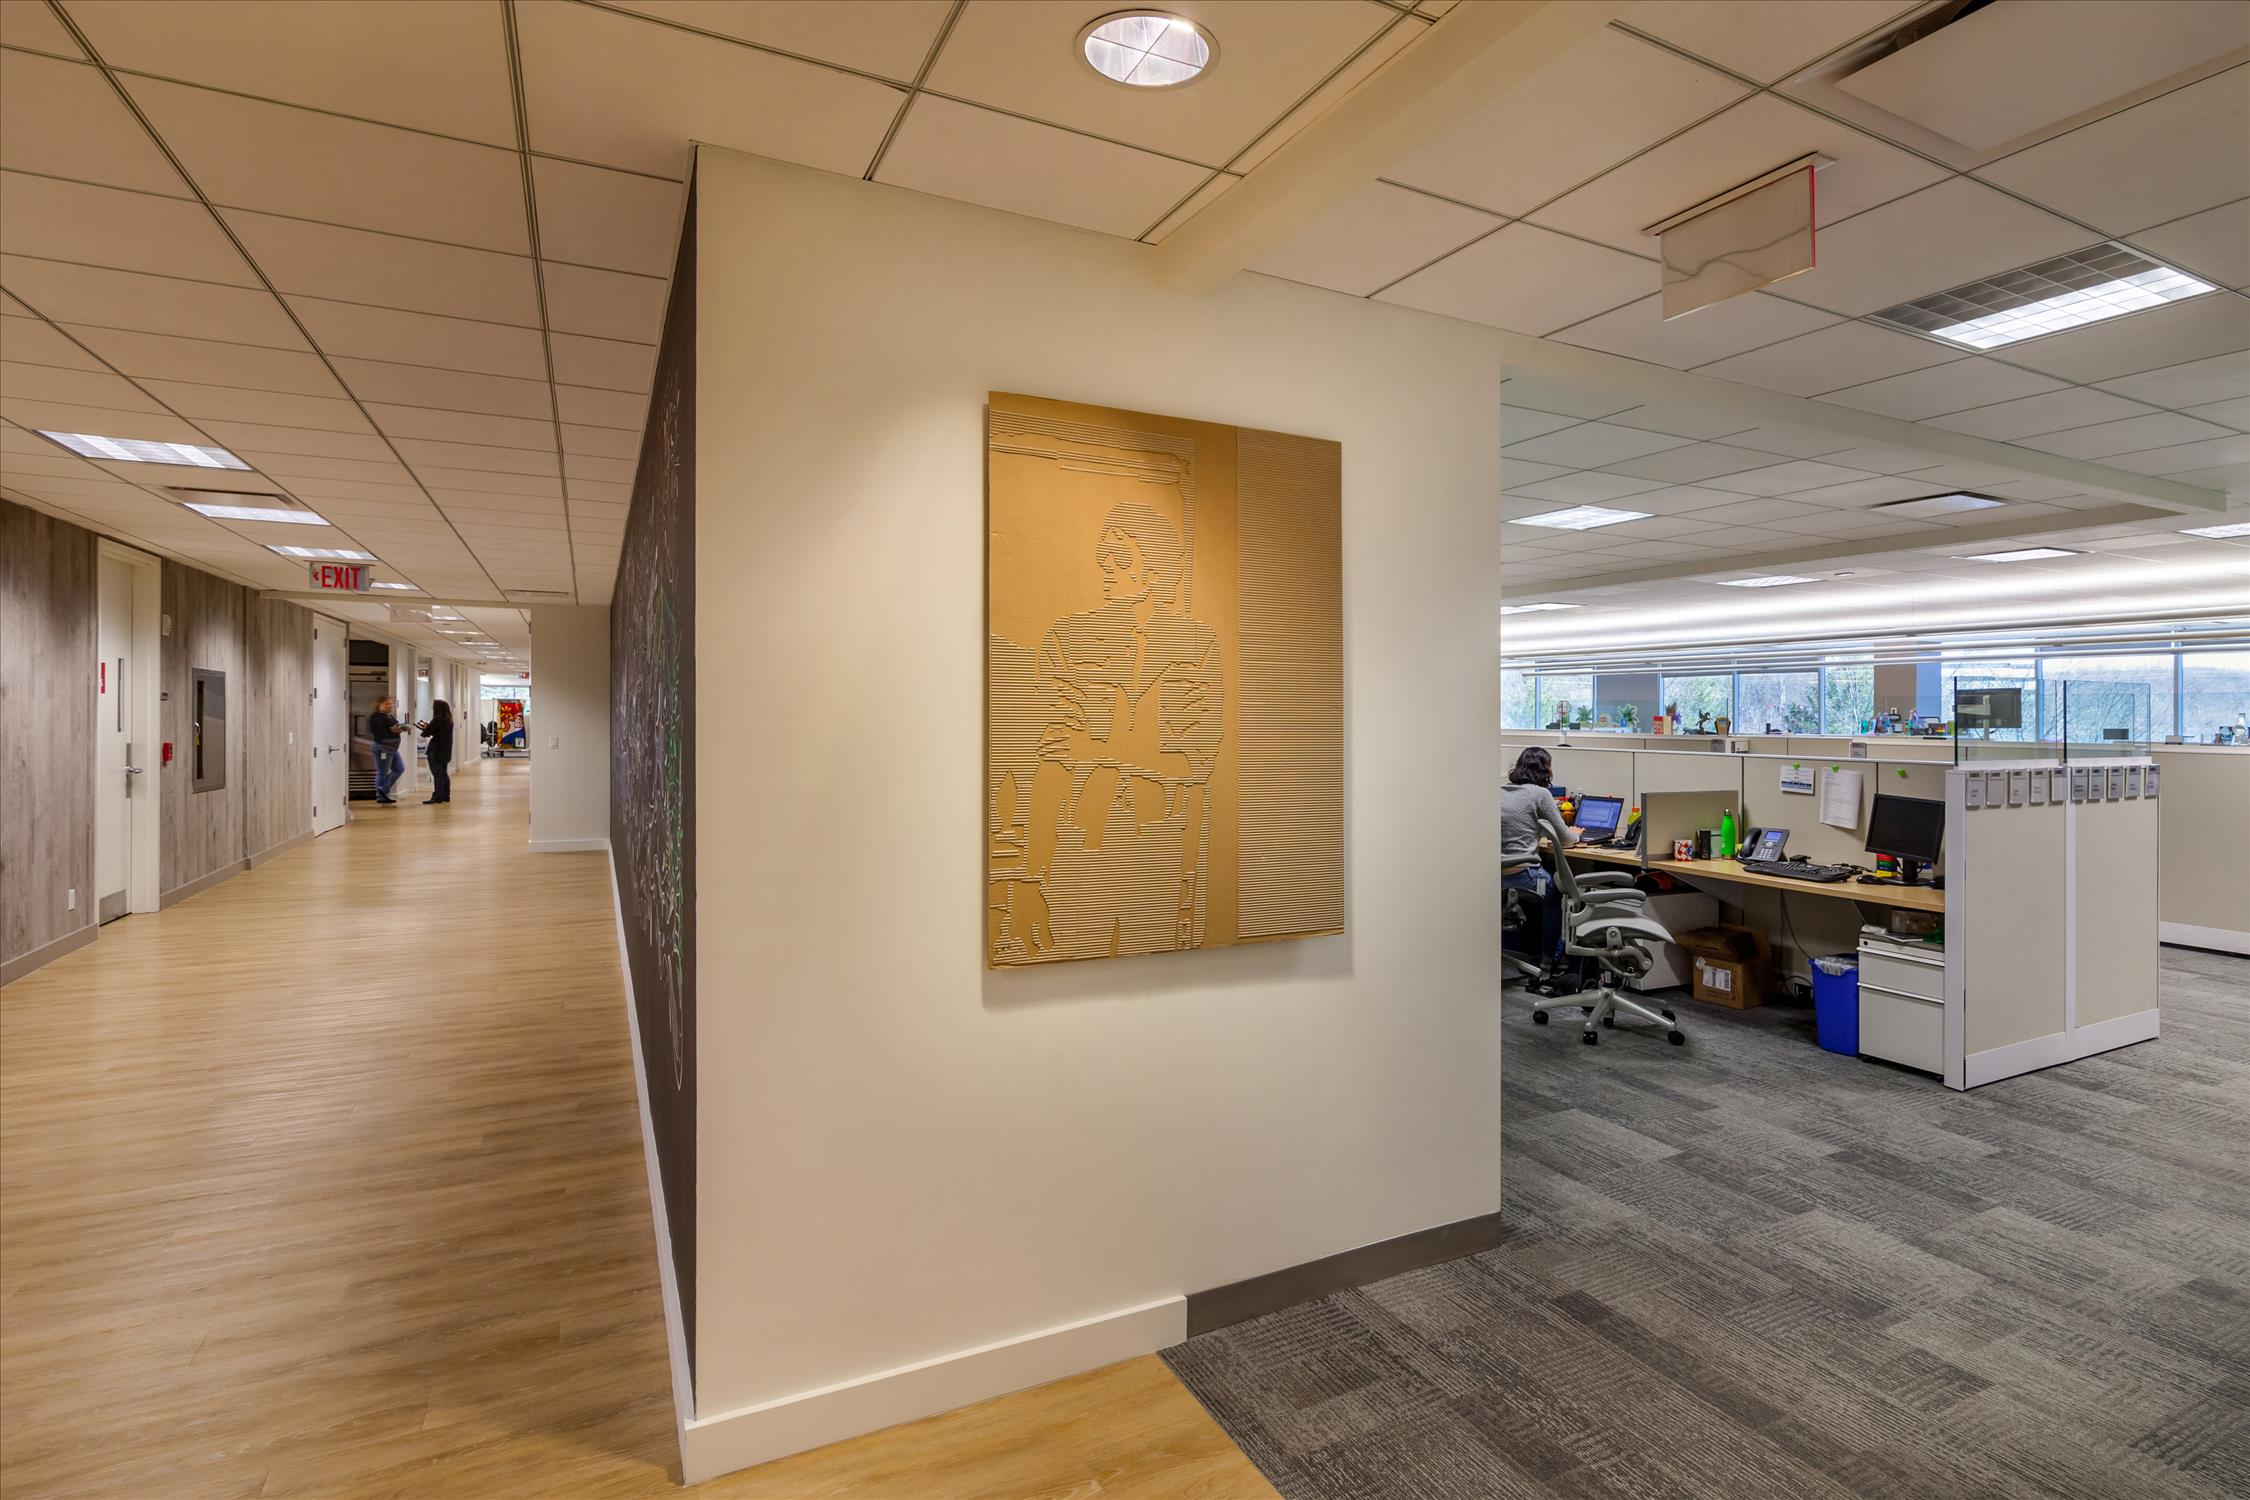 PEPSICO HQ - Curated by Indiewalls